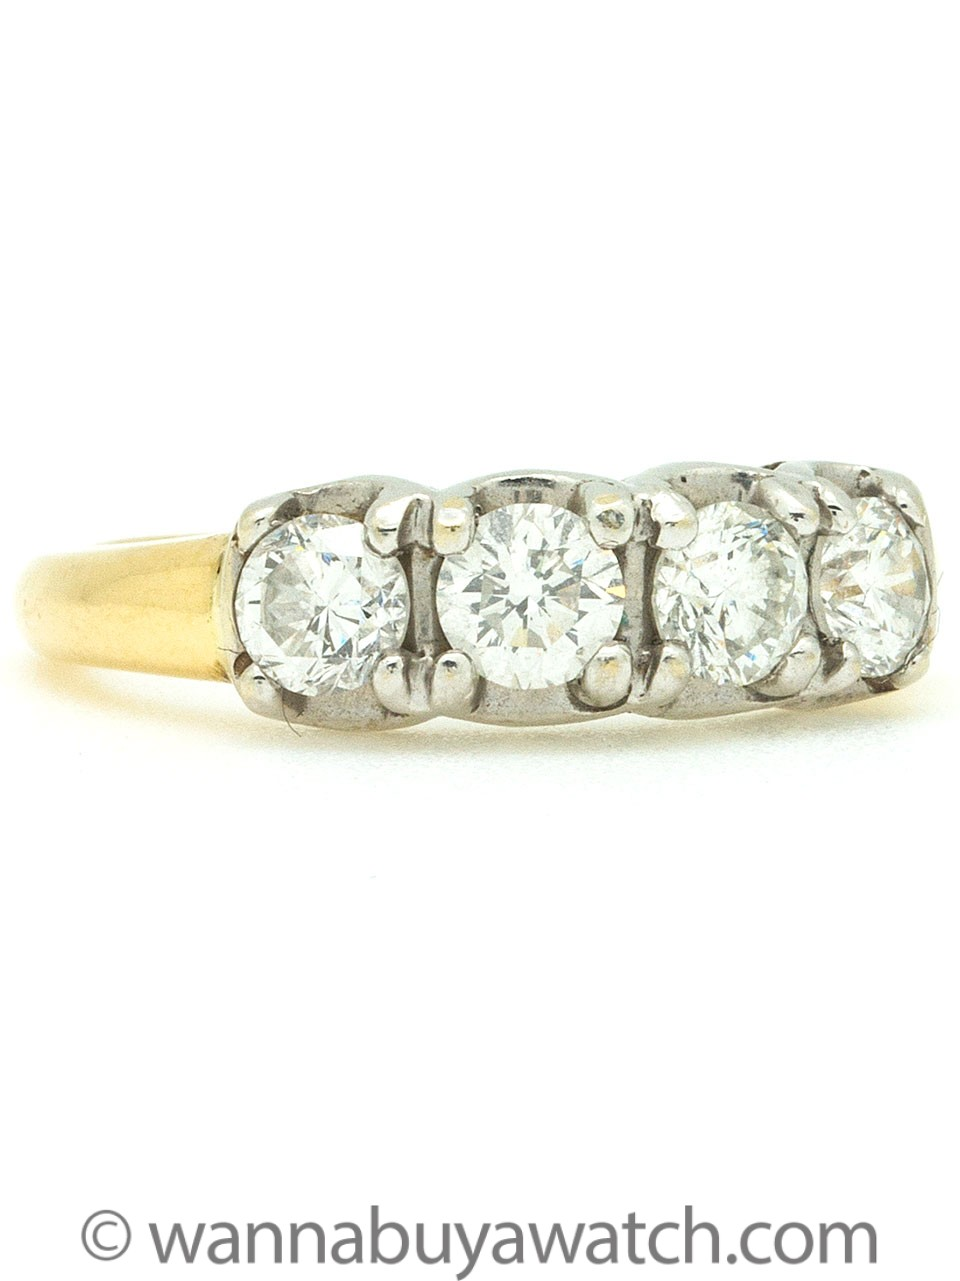 14K YG/18K WG 4 Diamond Band